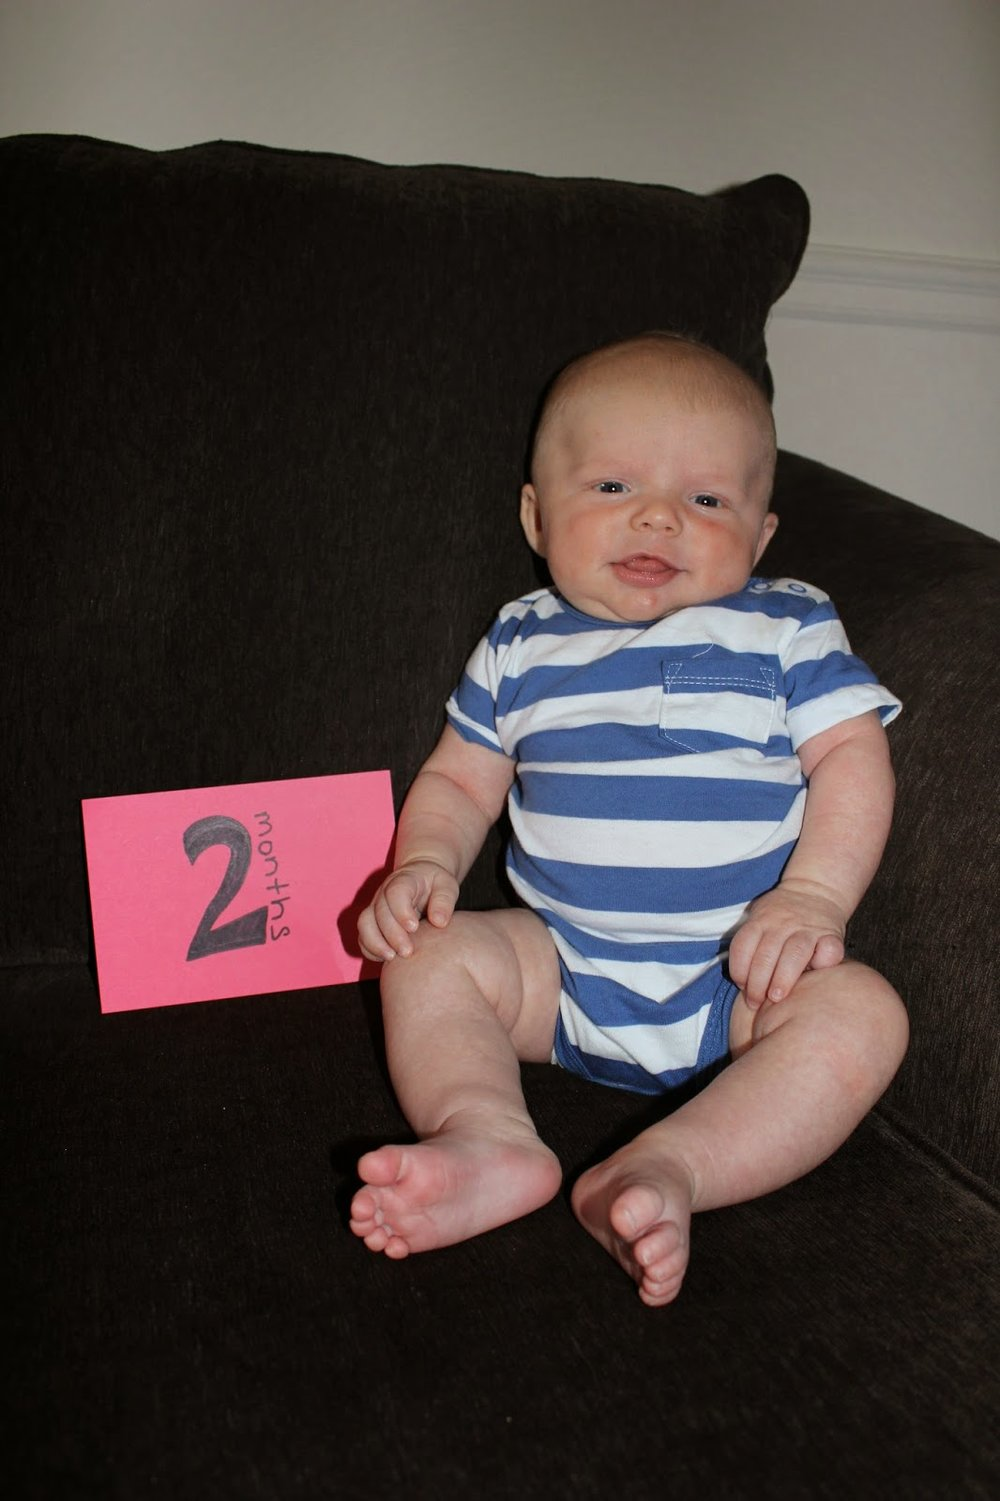 Robbe | 2 months